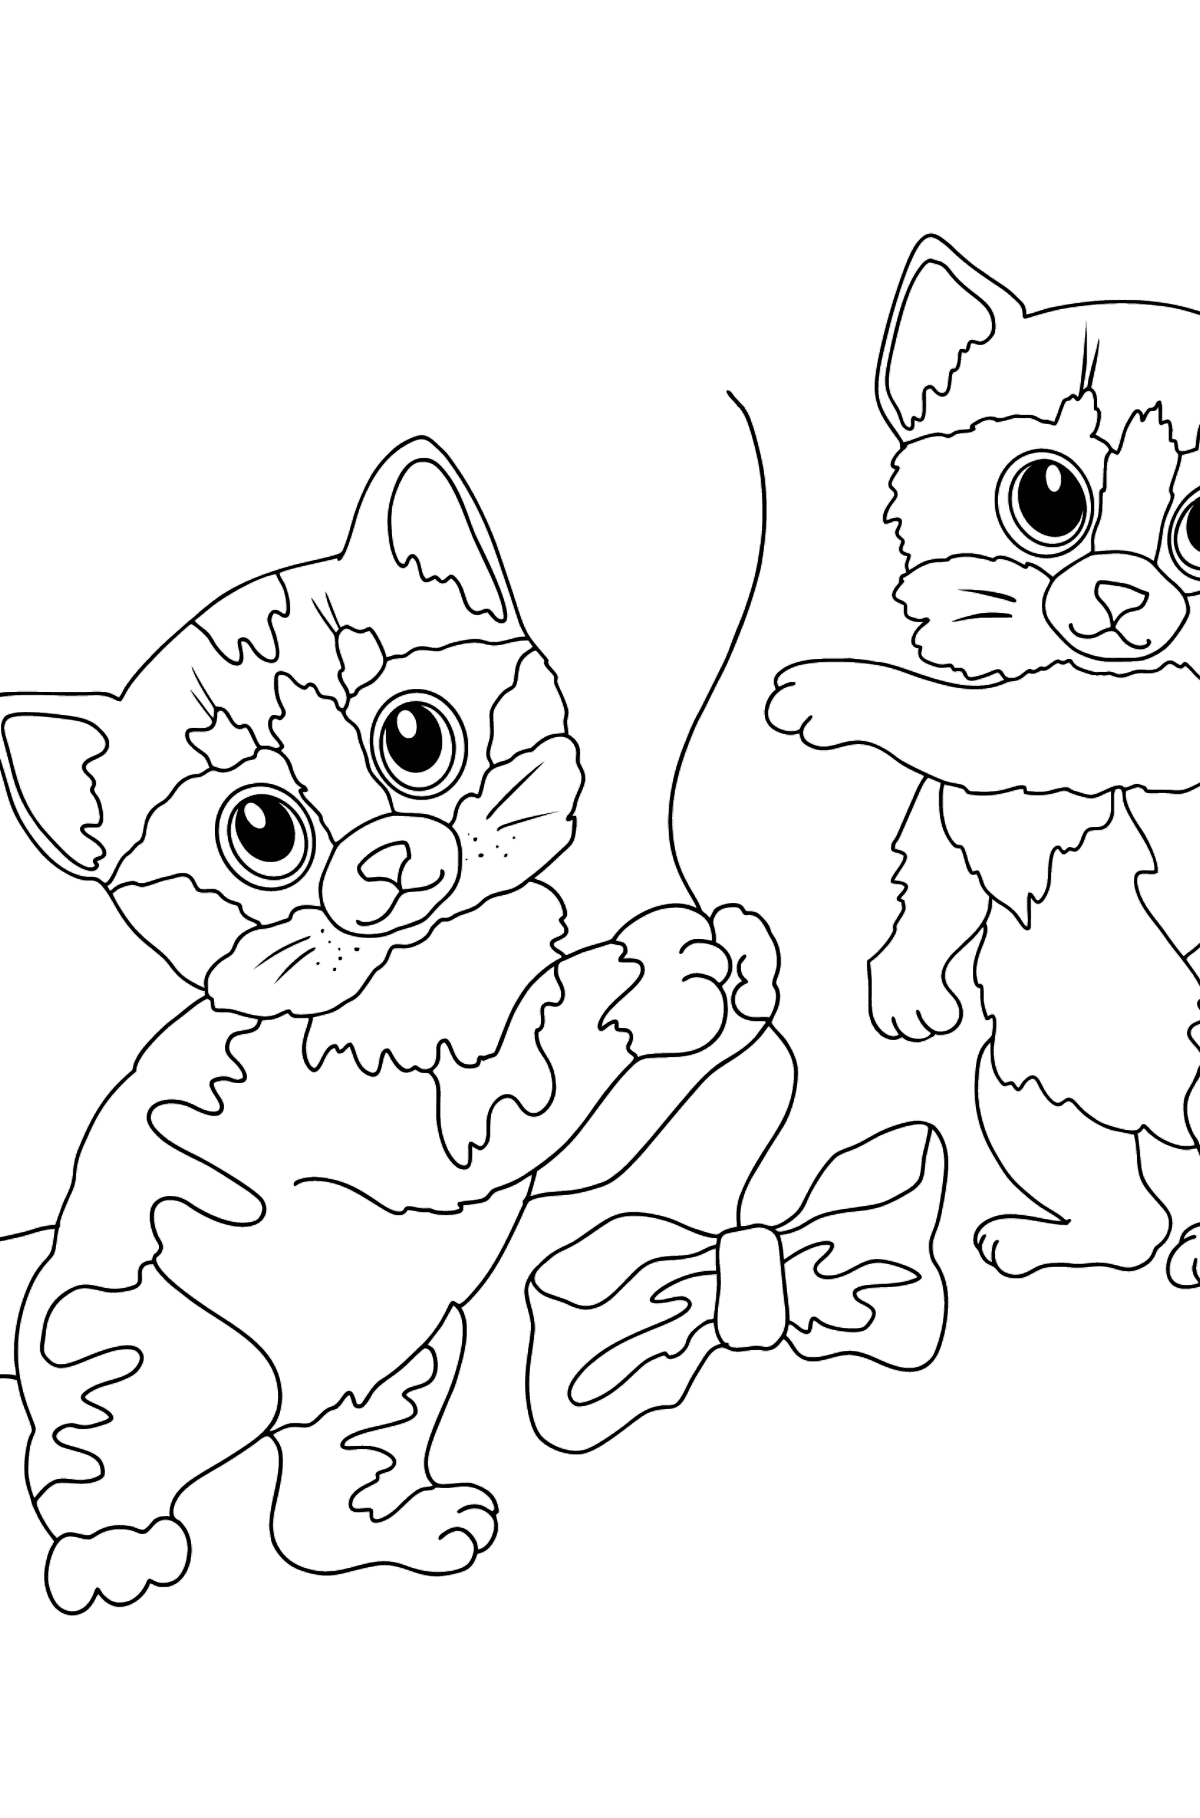 Coloring Page - Kittens are Jumping with Bows - Coloring Pages for Kids